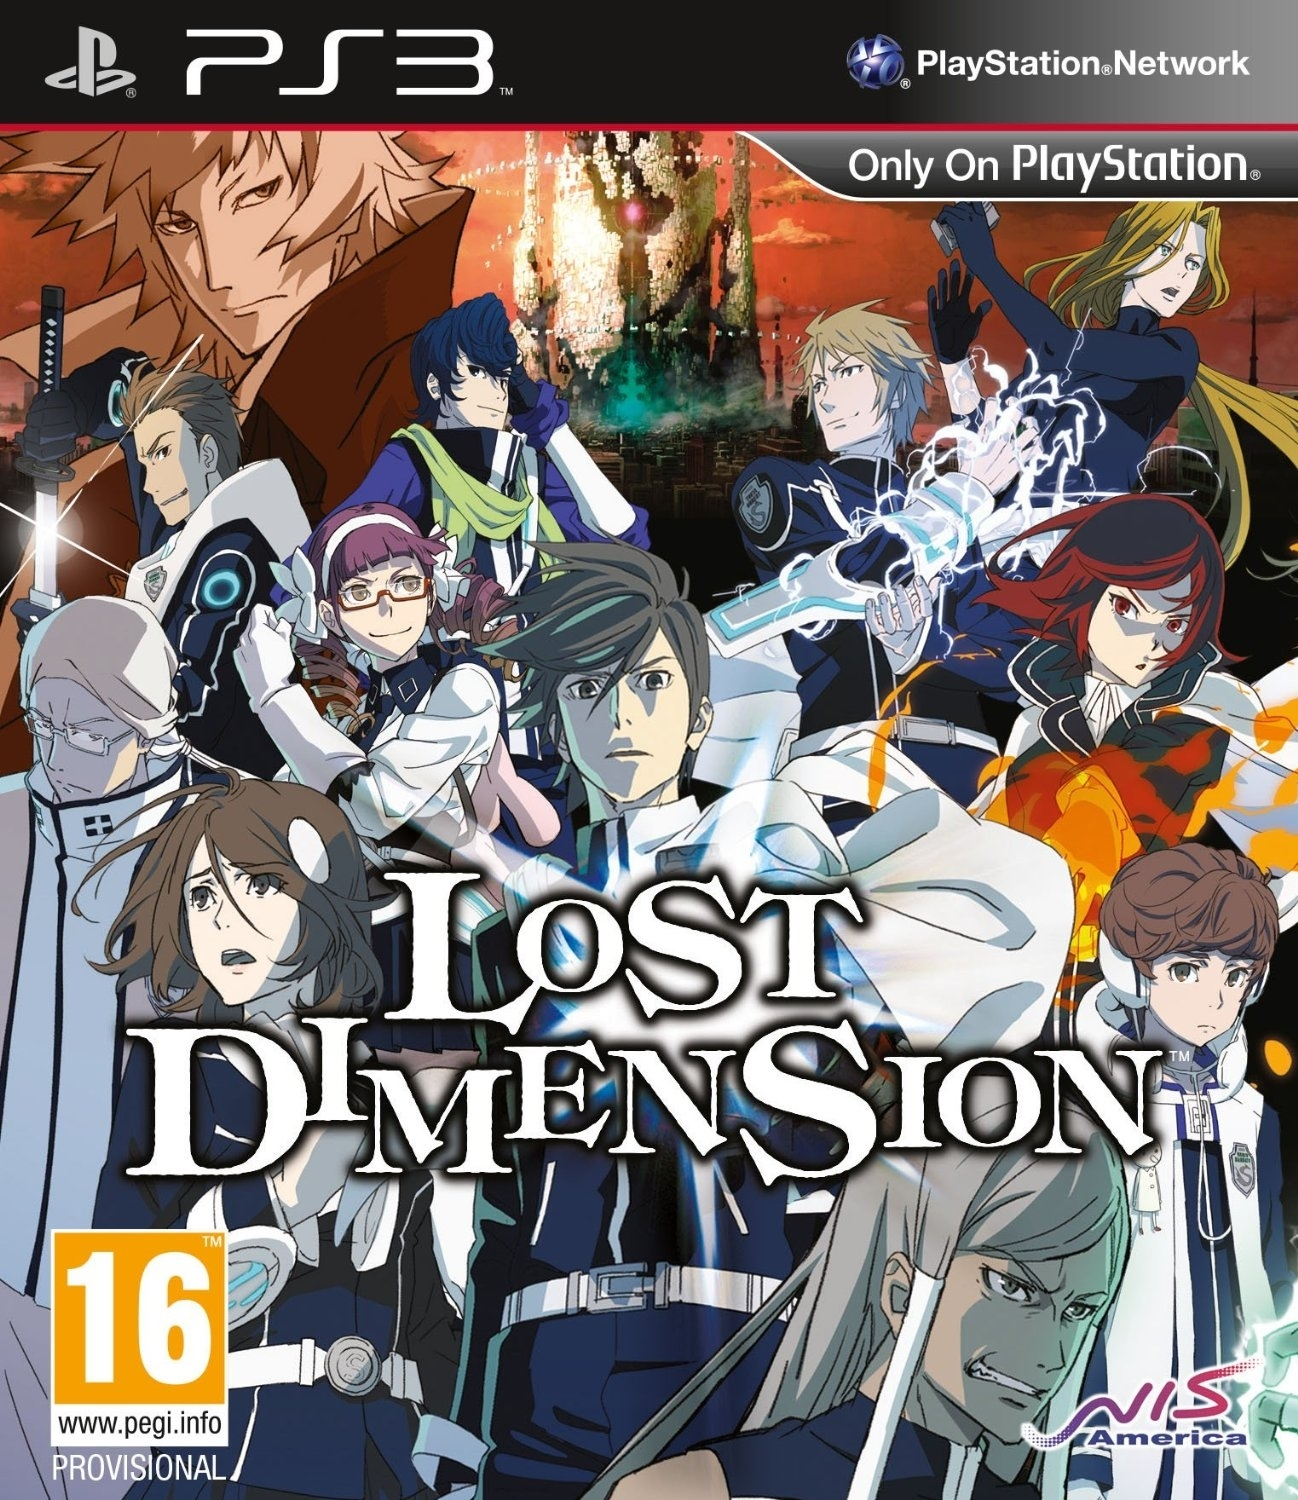 Lost Dimension (PS3)